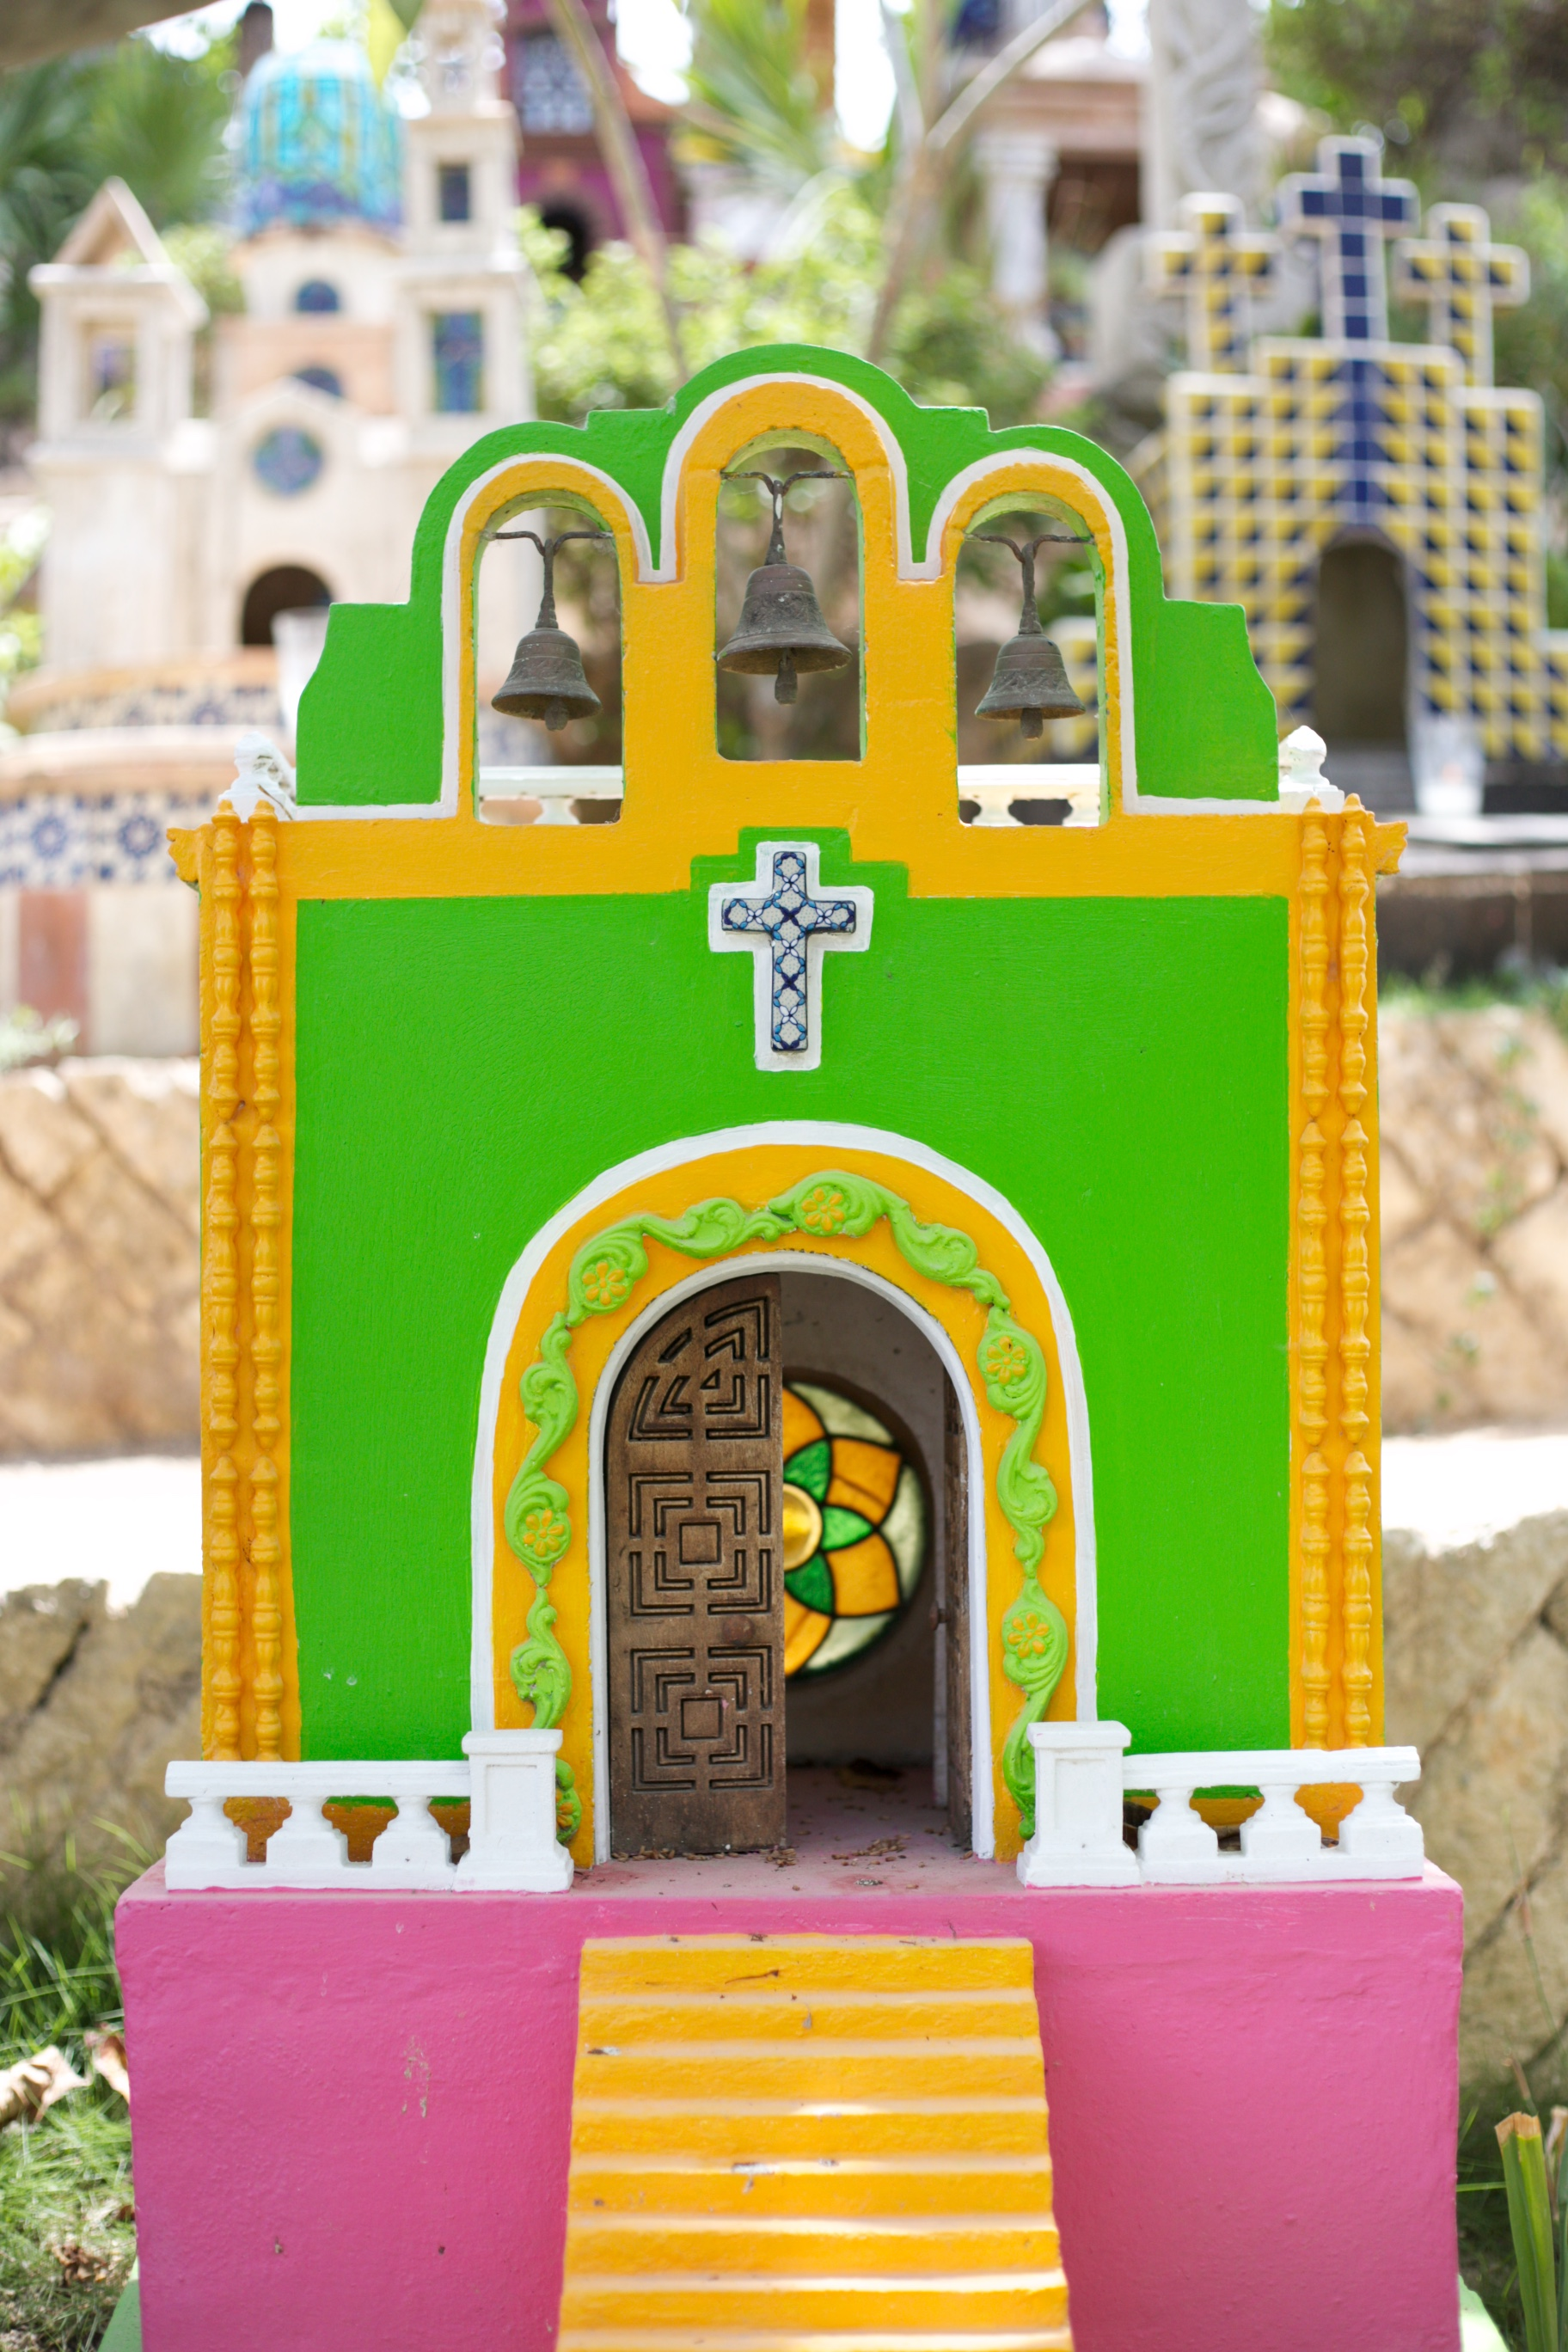 A very colourful painted house-like grave marker in a Mexican cemetery.